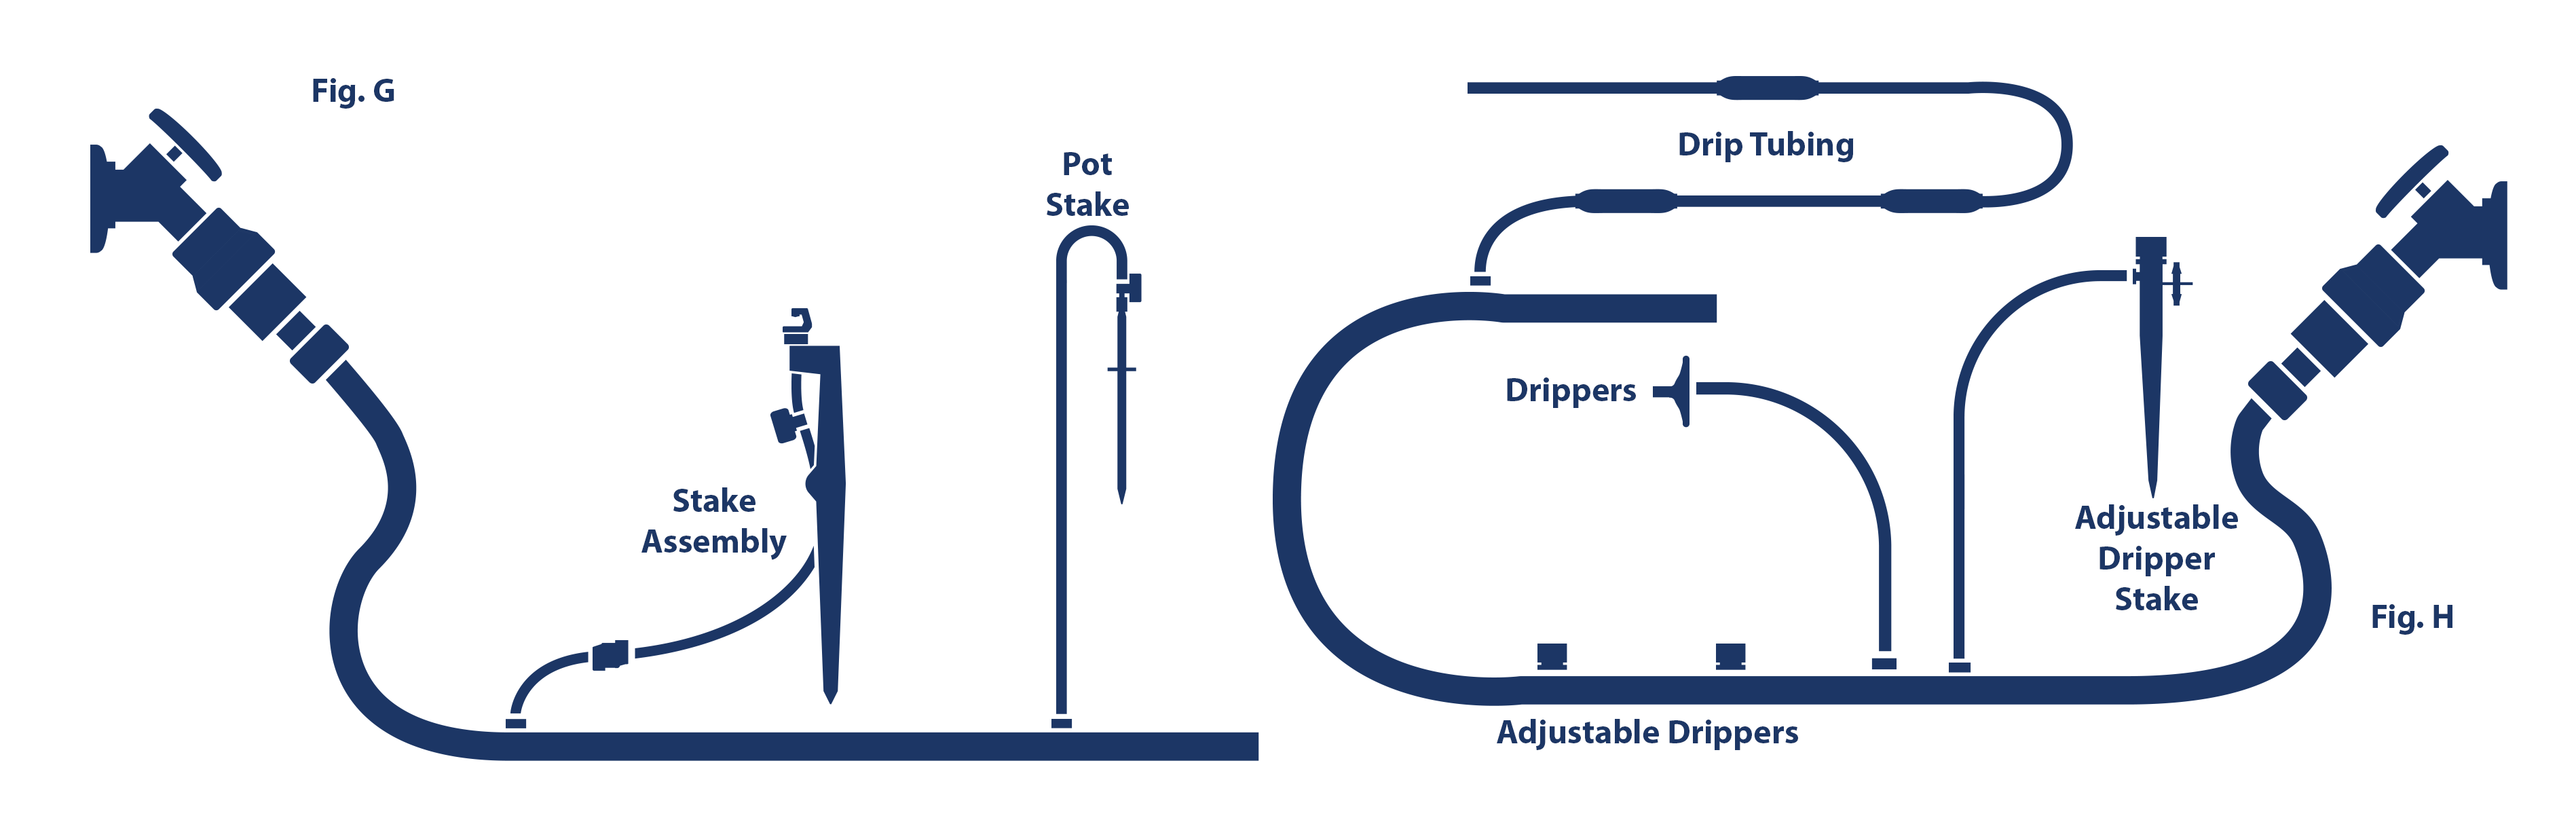 Mister Landscaper Drip Irrigation And Micro Spray Login Product Tan America Timer Wiring Diagram With 1 4 In Vinyl Tubing Drippers Adjustable Dripper Stakes Pot Can Be Run Fig I